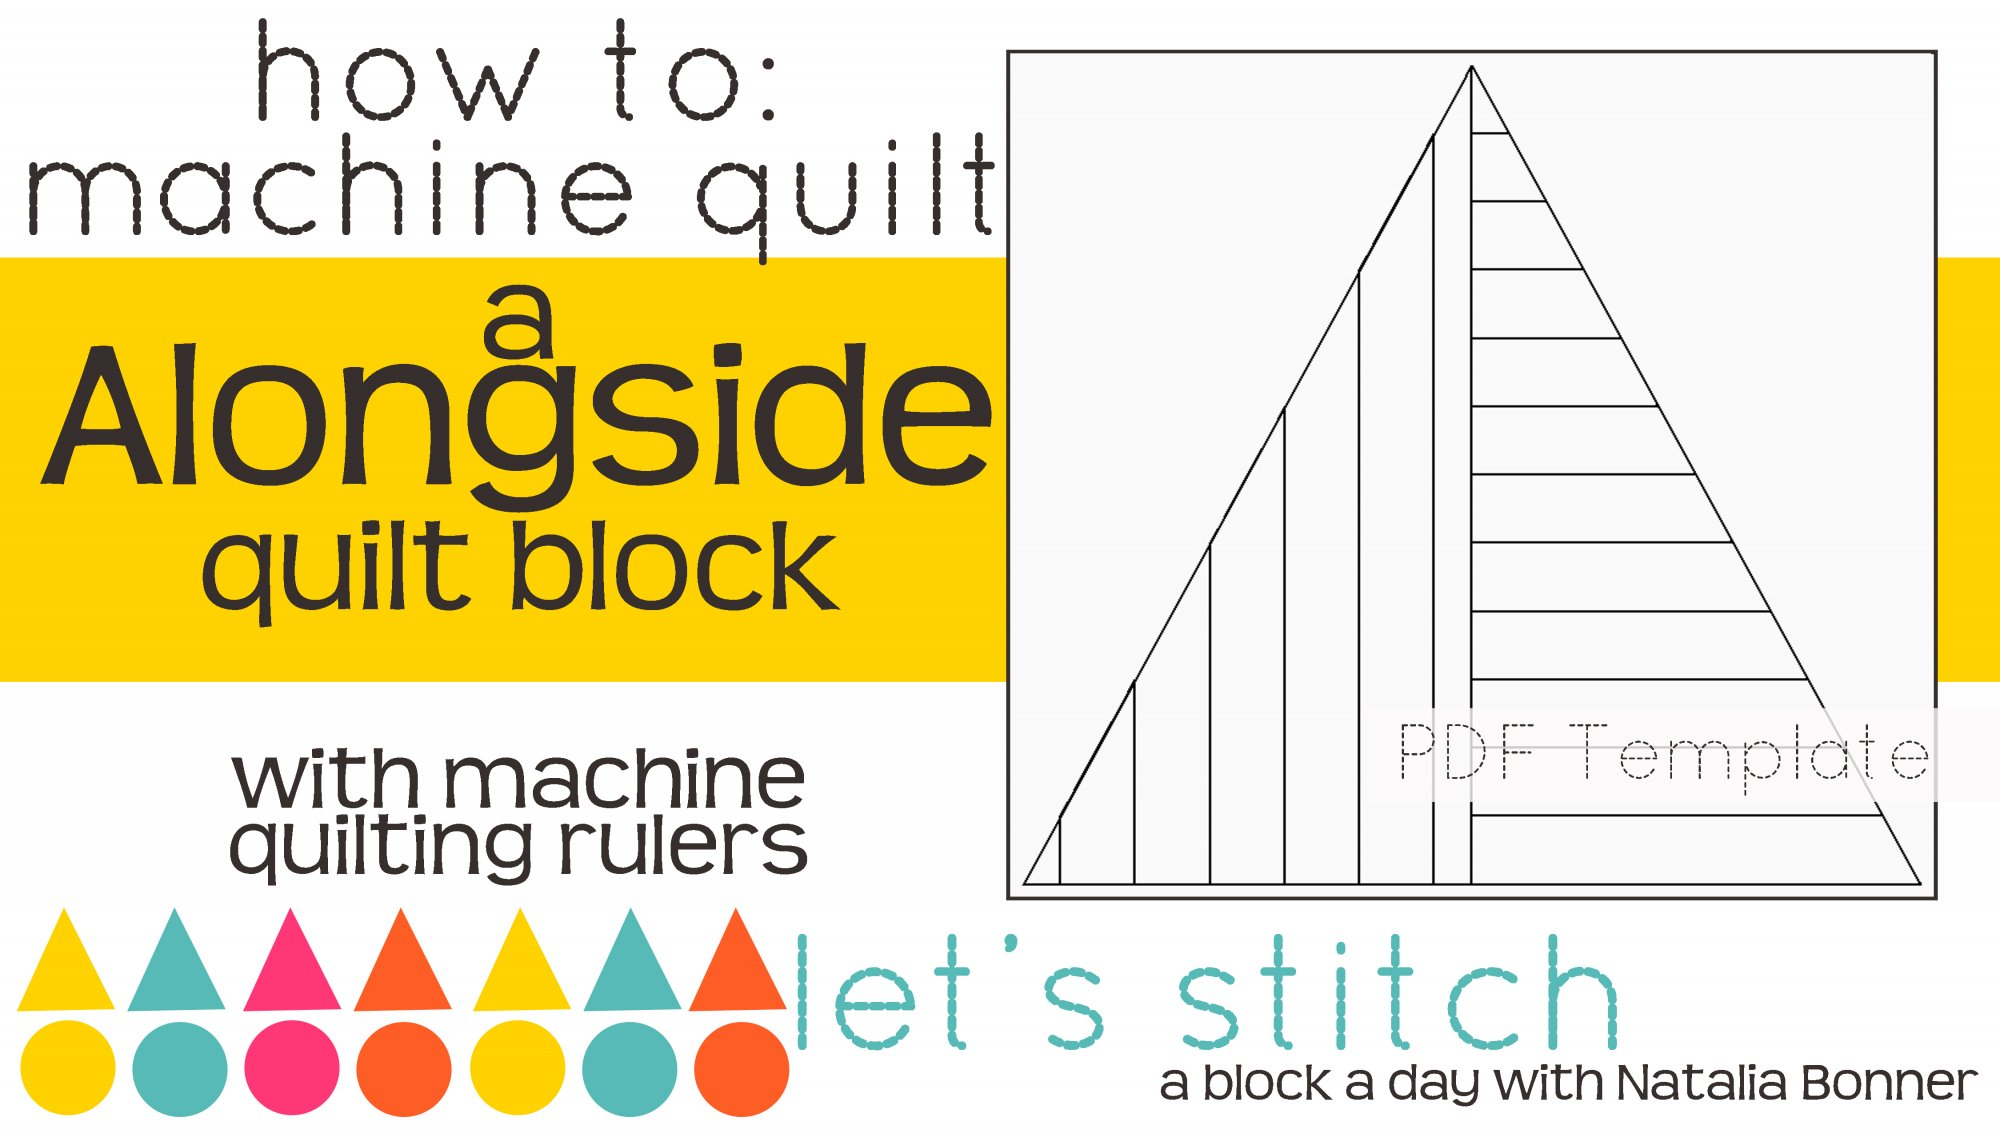 Let's Stitch - A Block a Day With Natalia Bonner - PDF - Alongside